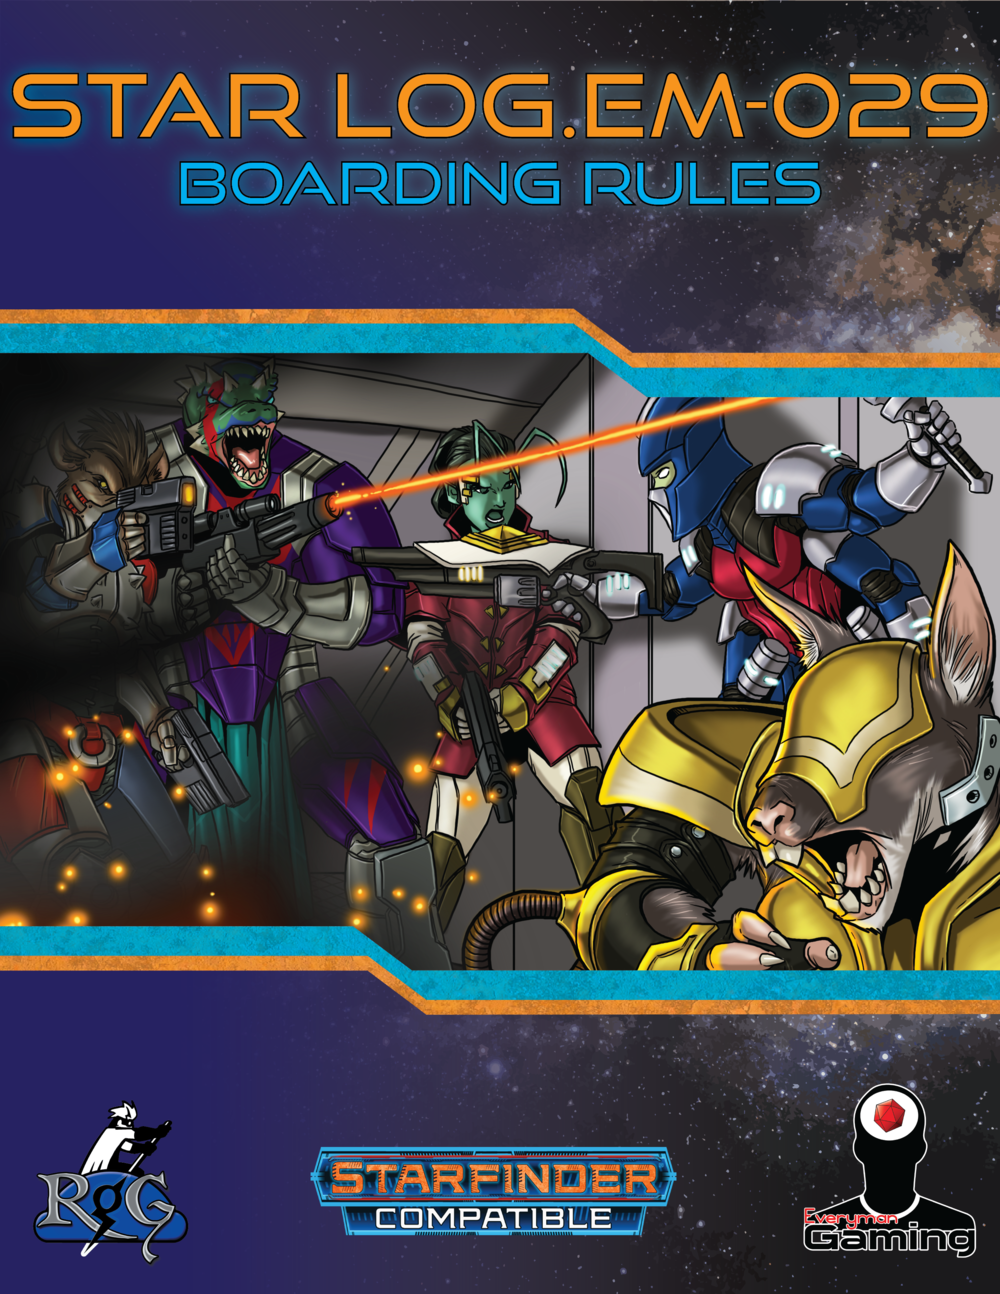 SF029 Boarding Rules.png